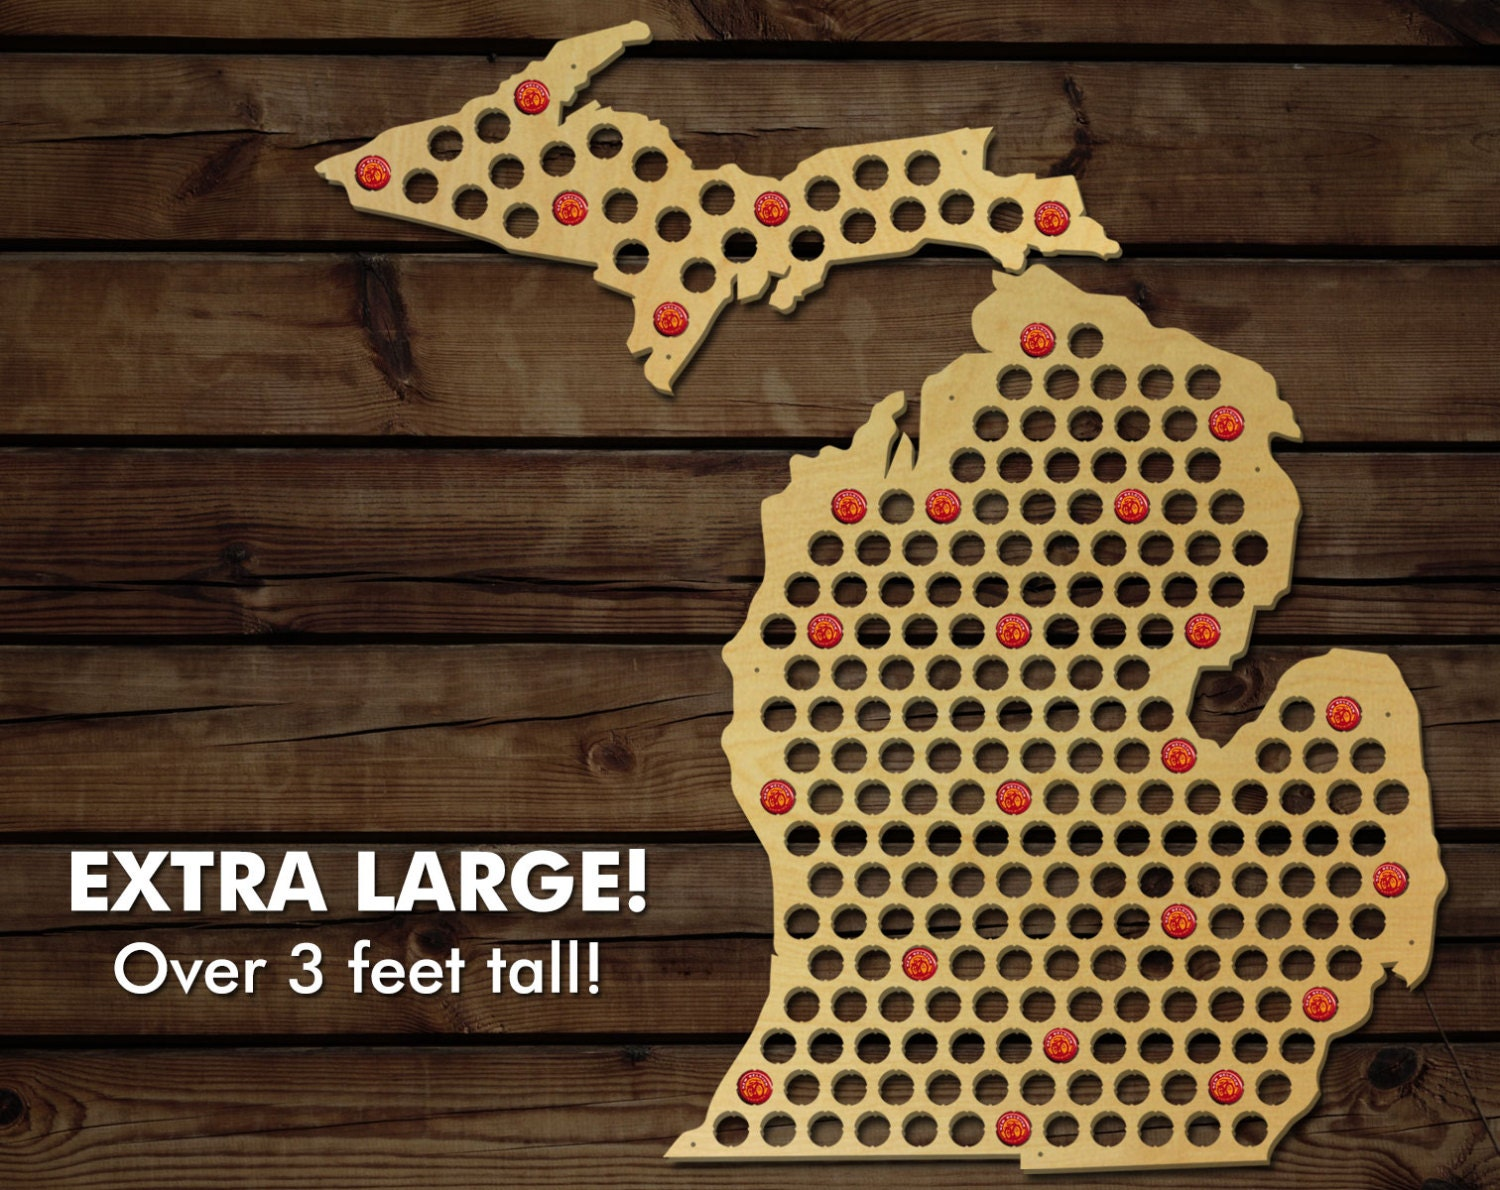 Michigan Beer Cap Map XL Large Beer Cap Holder Extra Large